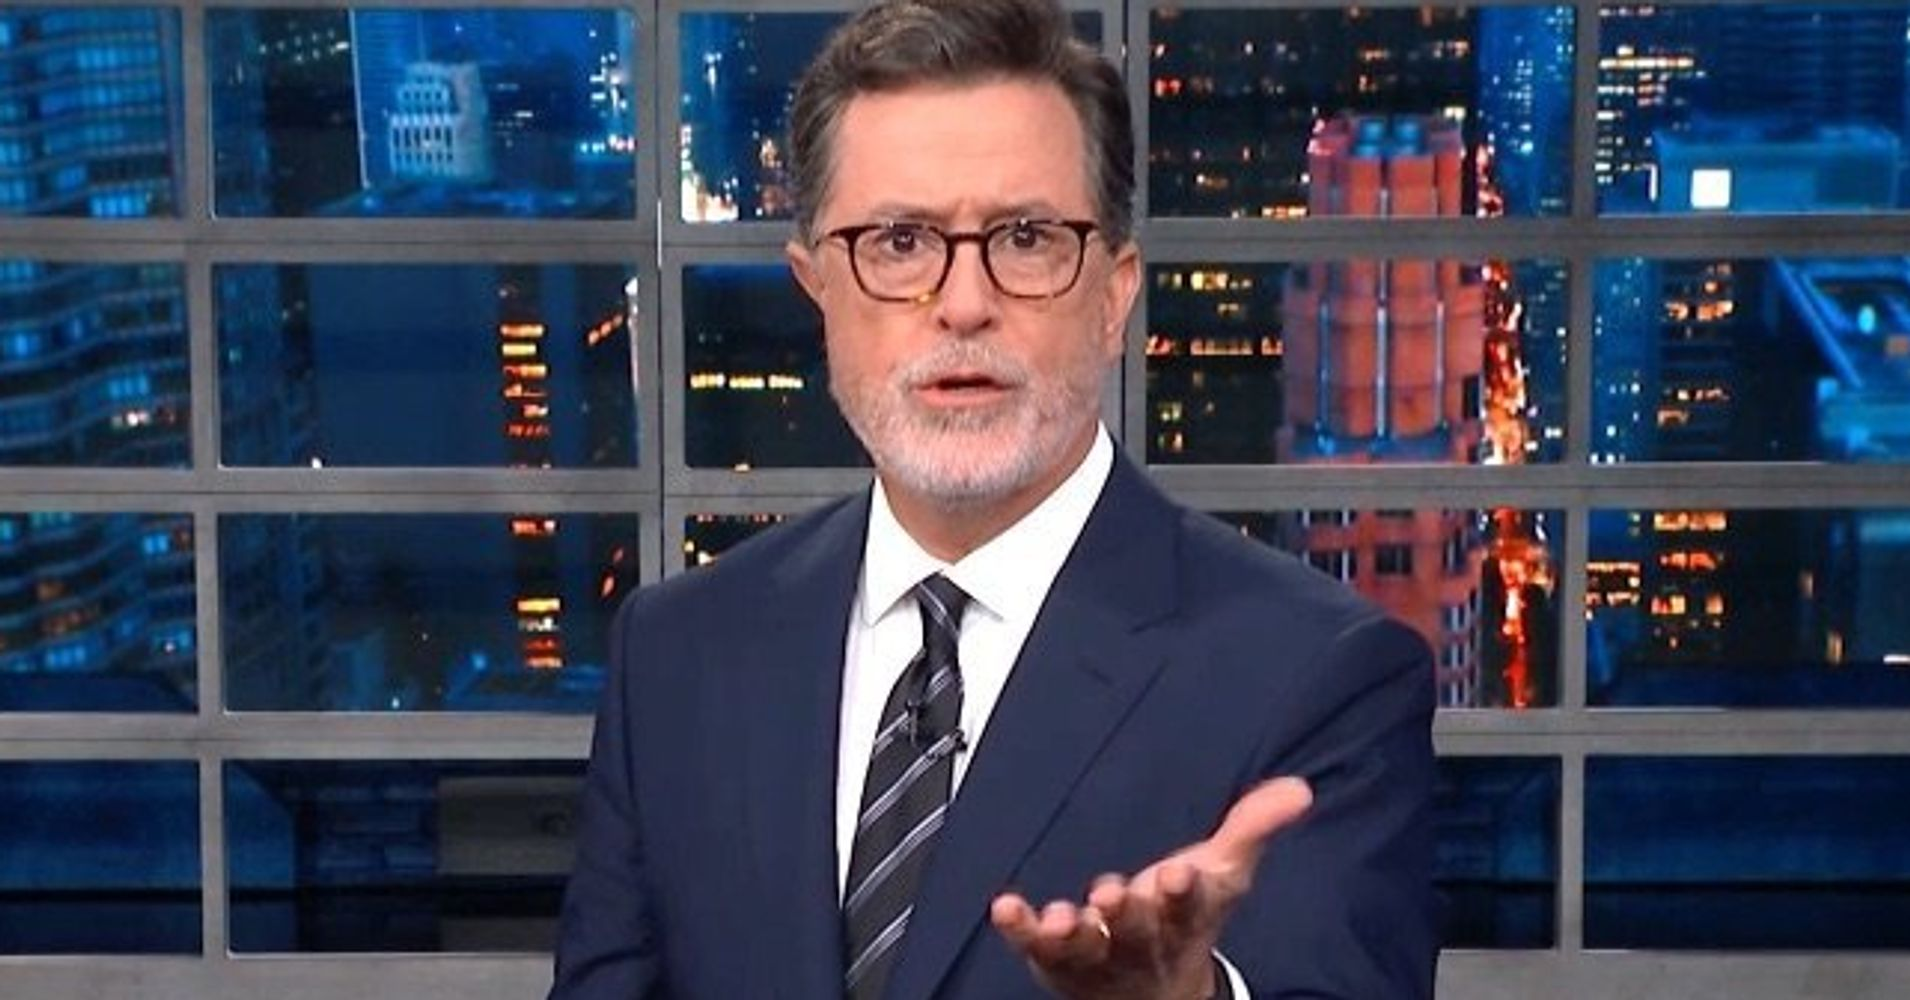 Stephen Colbert Is Back With An Urgent Warning For Donald Trump's Staffers